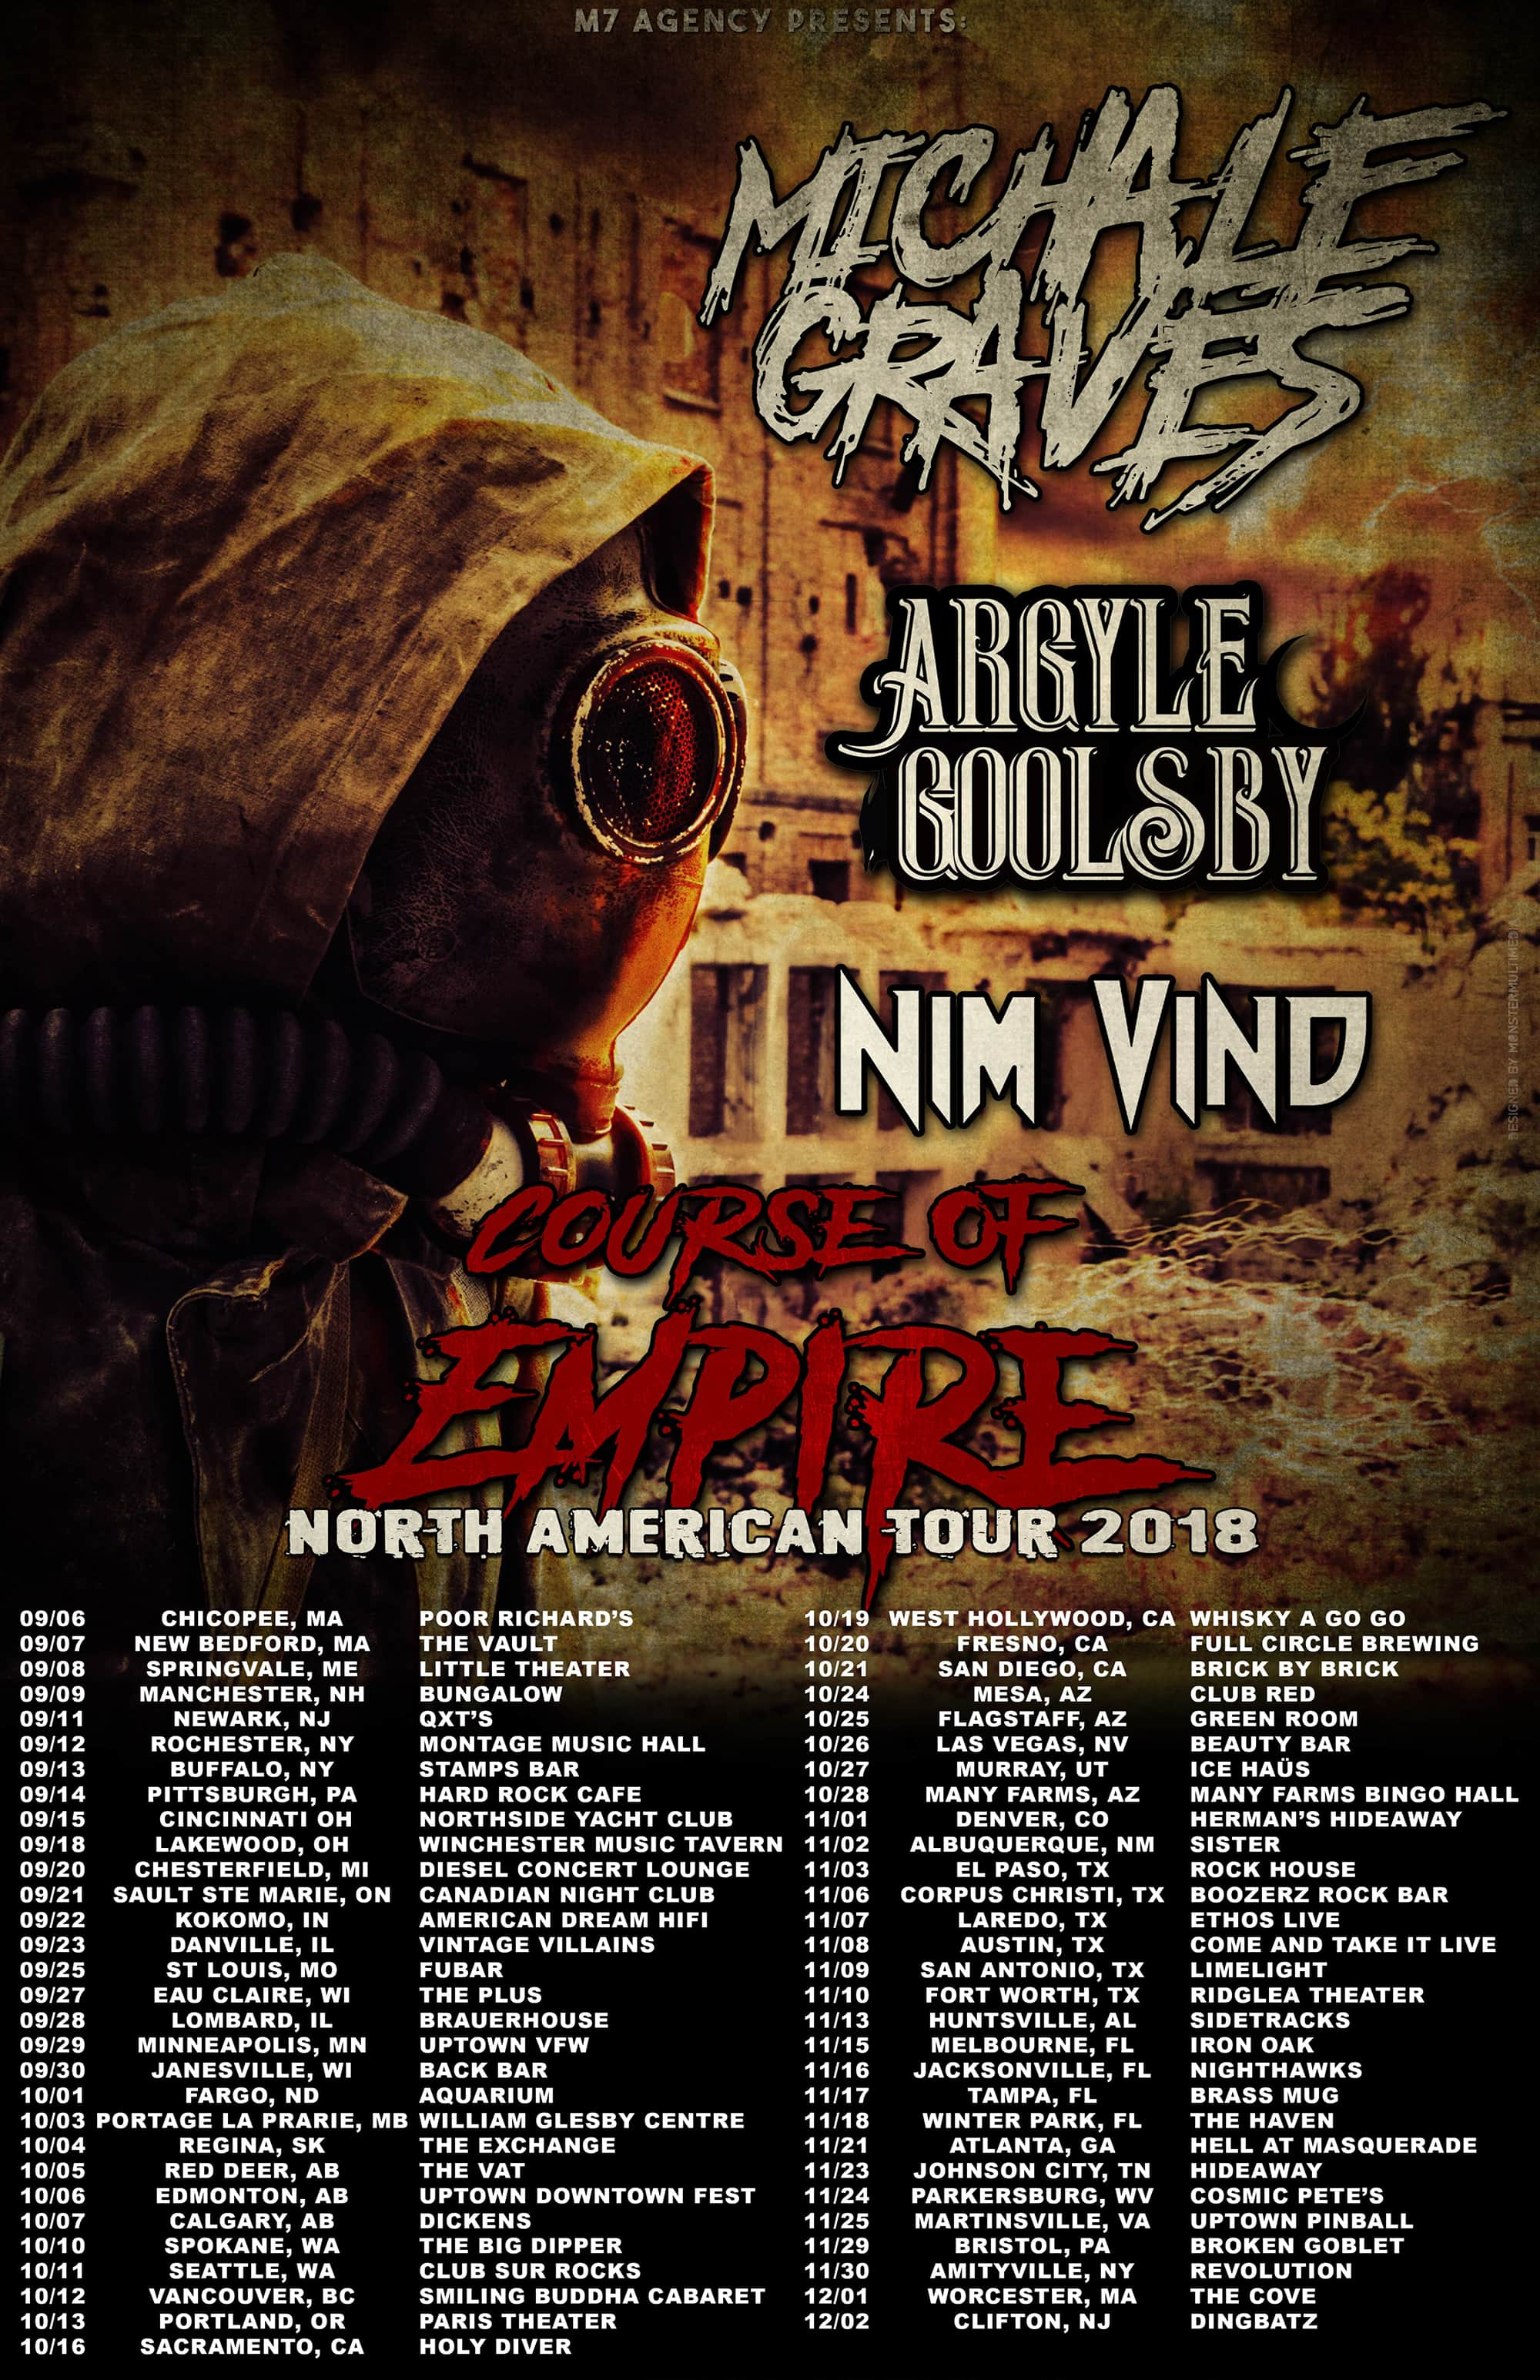 Course of Empire Tour Poster